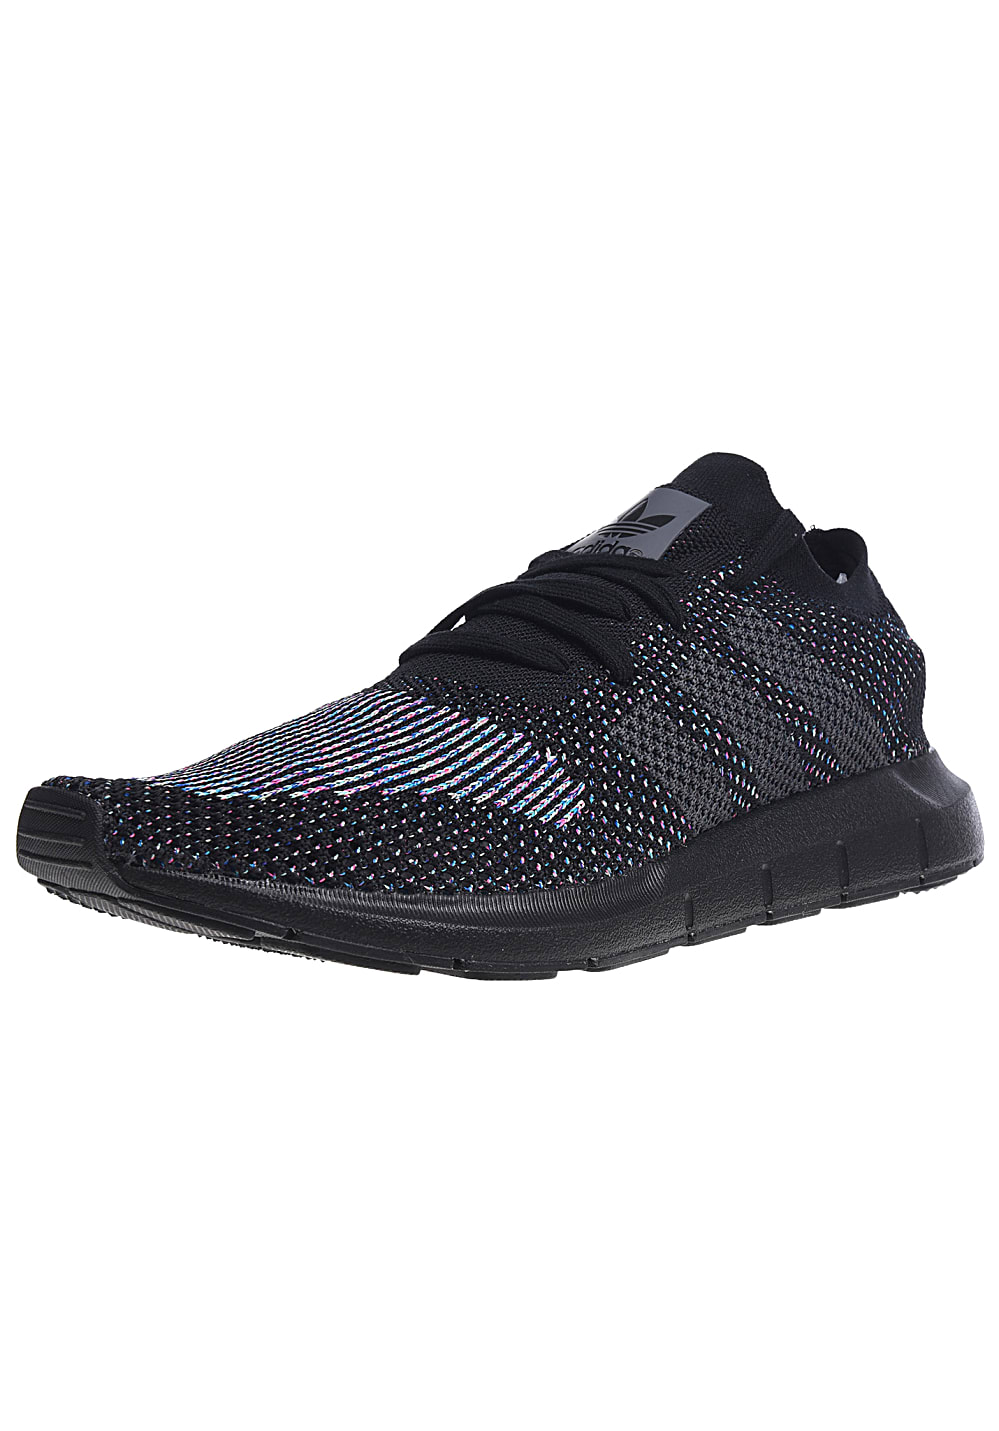 a79868fea8b7d ADIDAS ORIGINALS Swift Run Primeknit - Sneakers - Black - Planet Sports